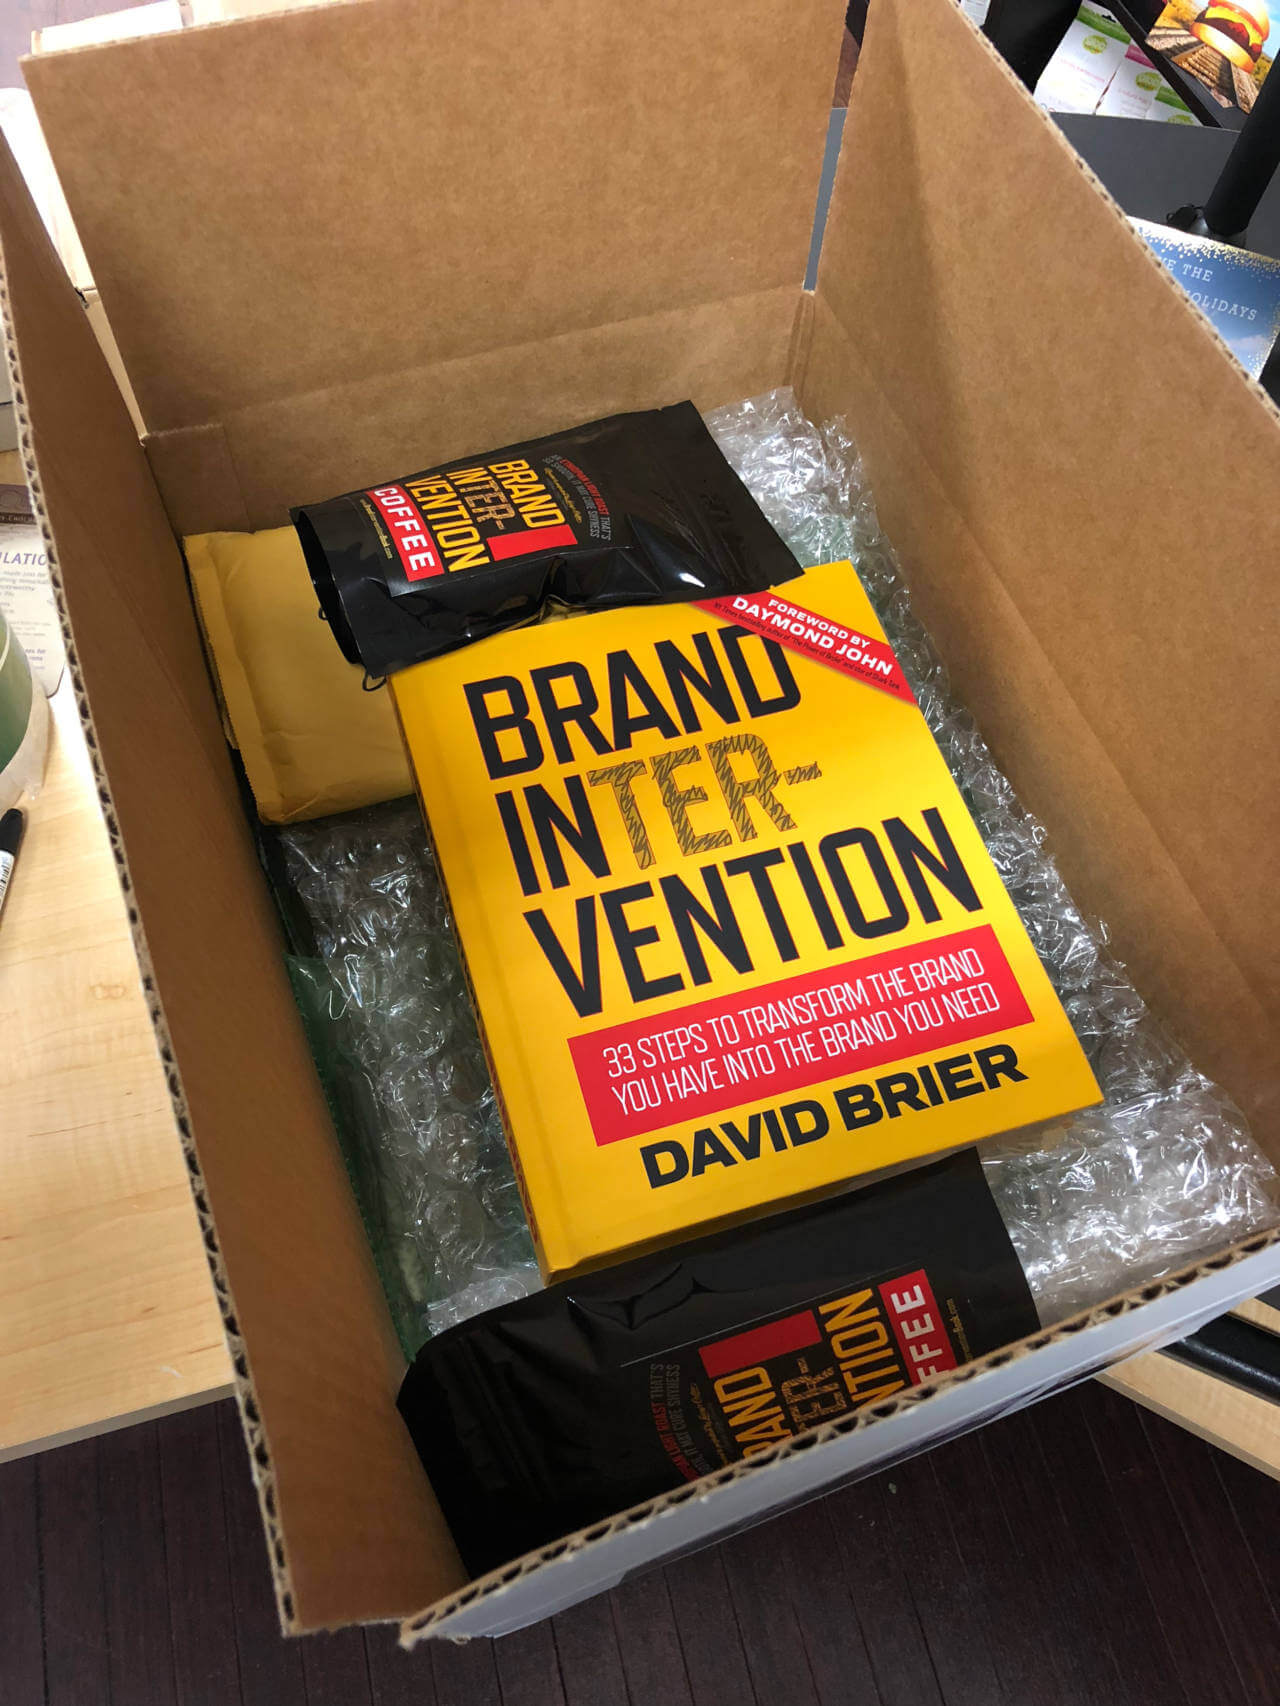 Gary Vee and his Sneaker Box from David Brier